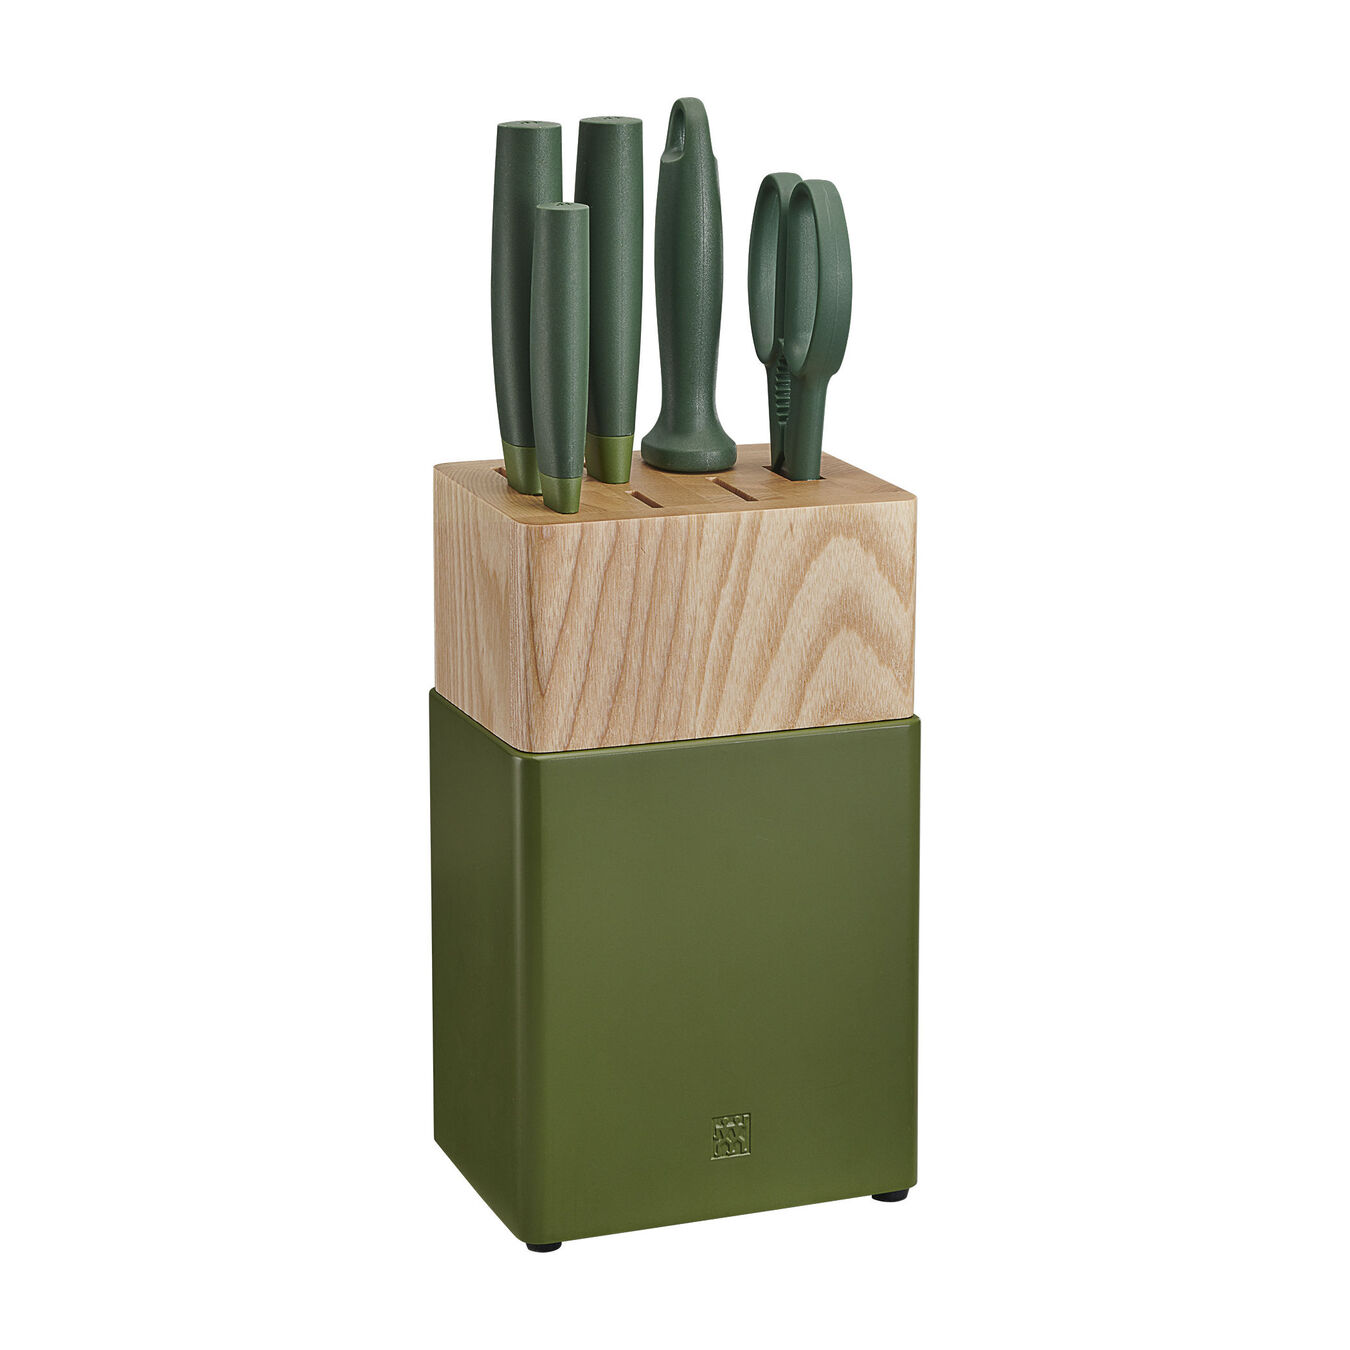 6-pc, Z Now S Knife Block Set, lime green,,large 1